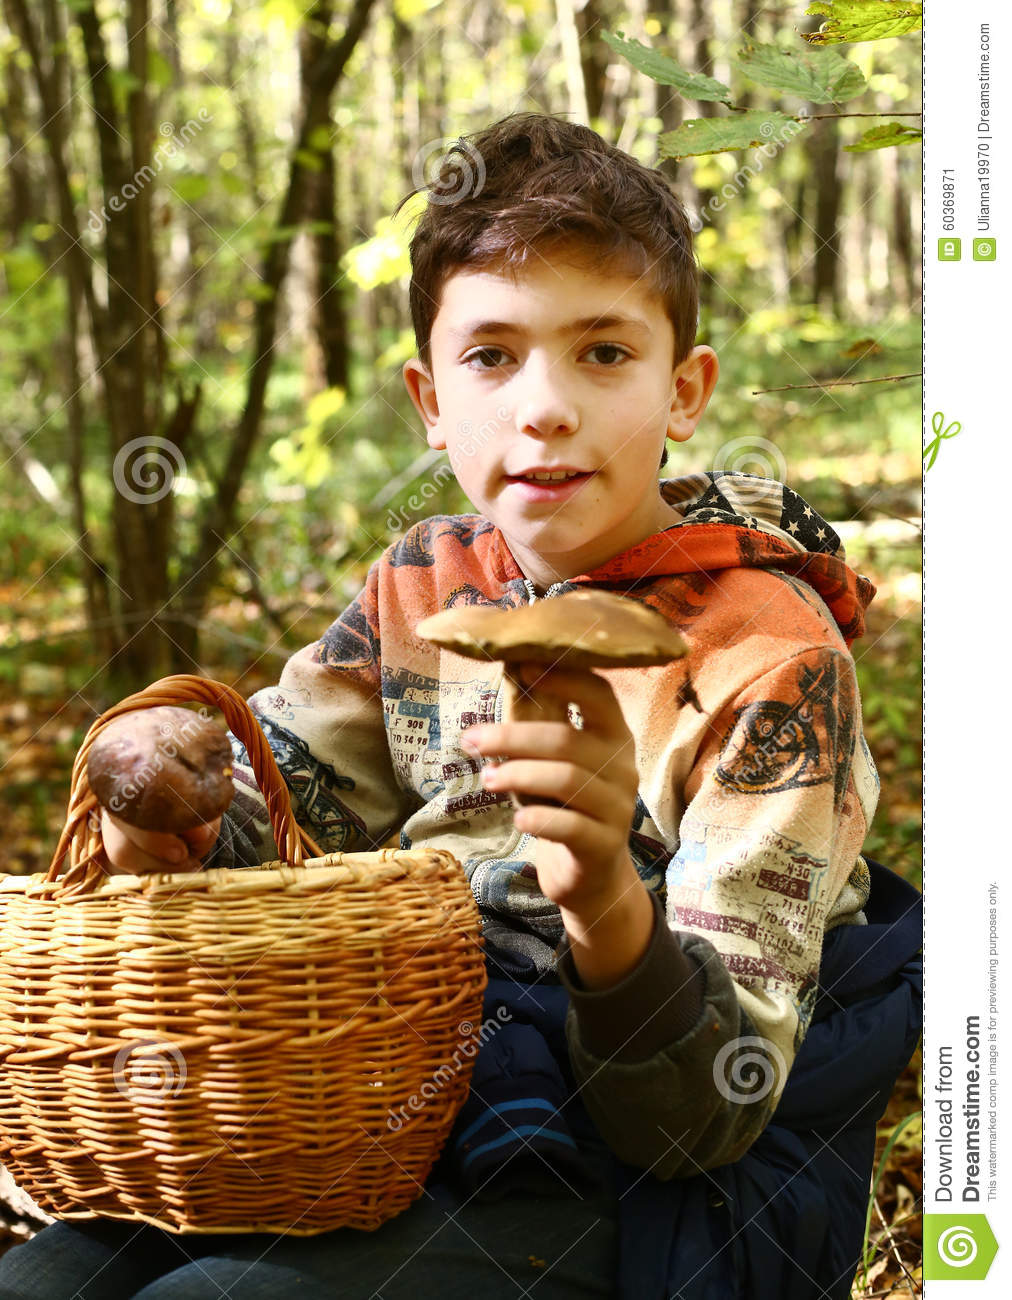 Boy collect mushrooms in the autumn forest